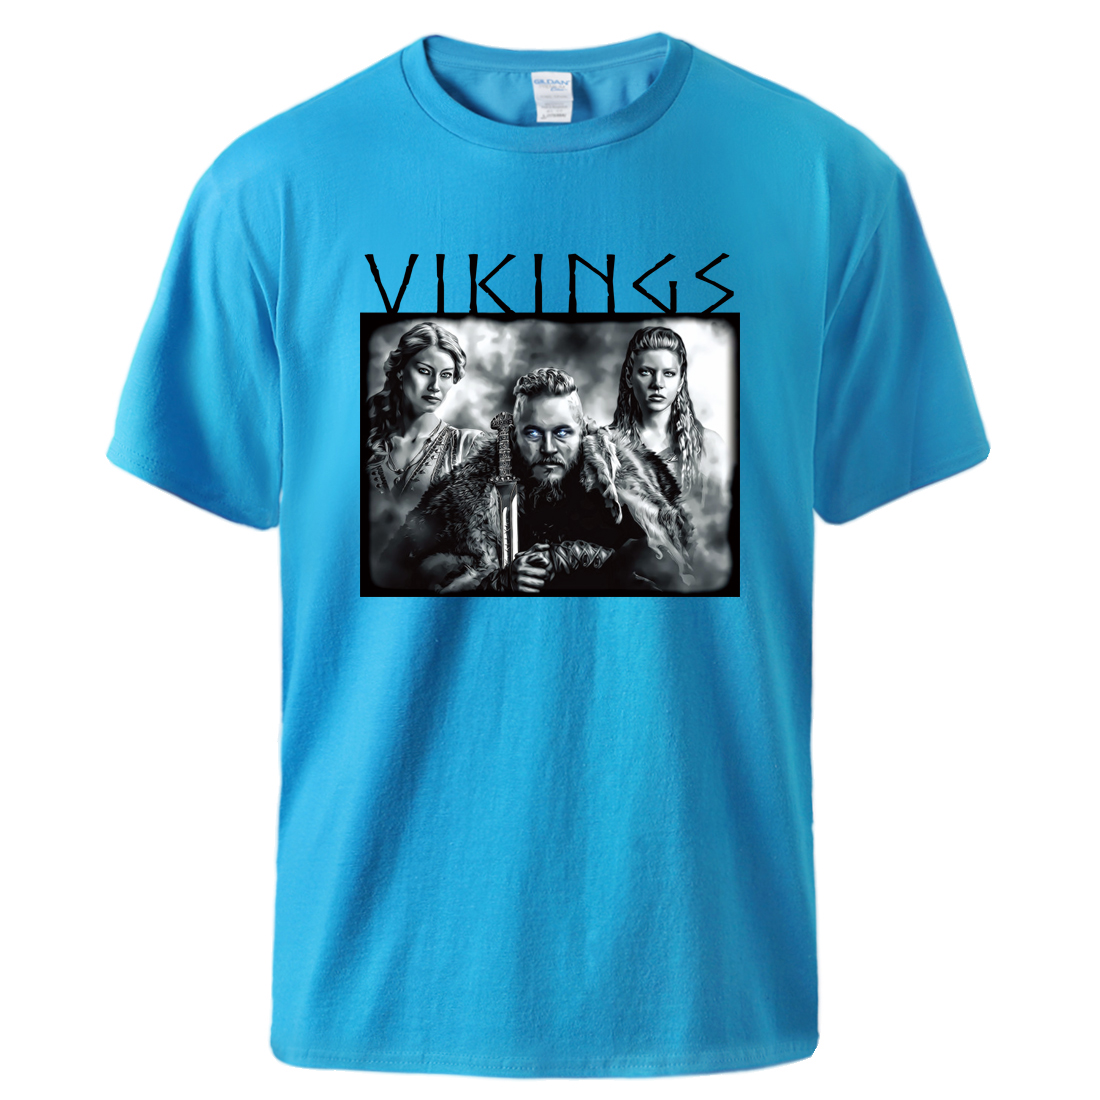 Odin Vikings Tshirts for Man Historical Action Movie T shirt Summer Short Sleeve Cotton Streetwear 2020 Man Brand Casual Tshirt image